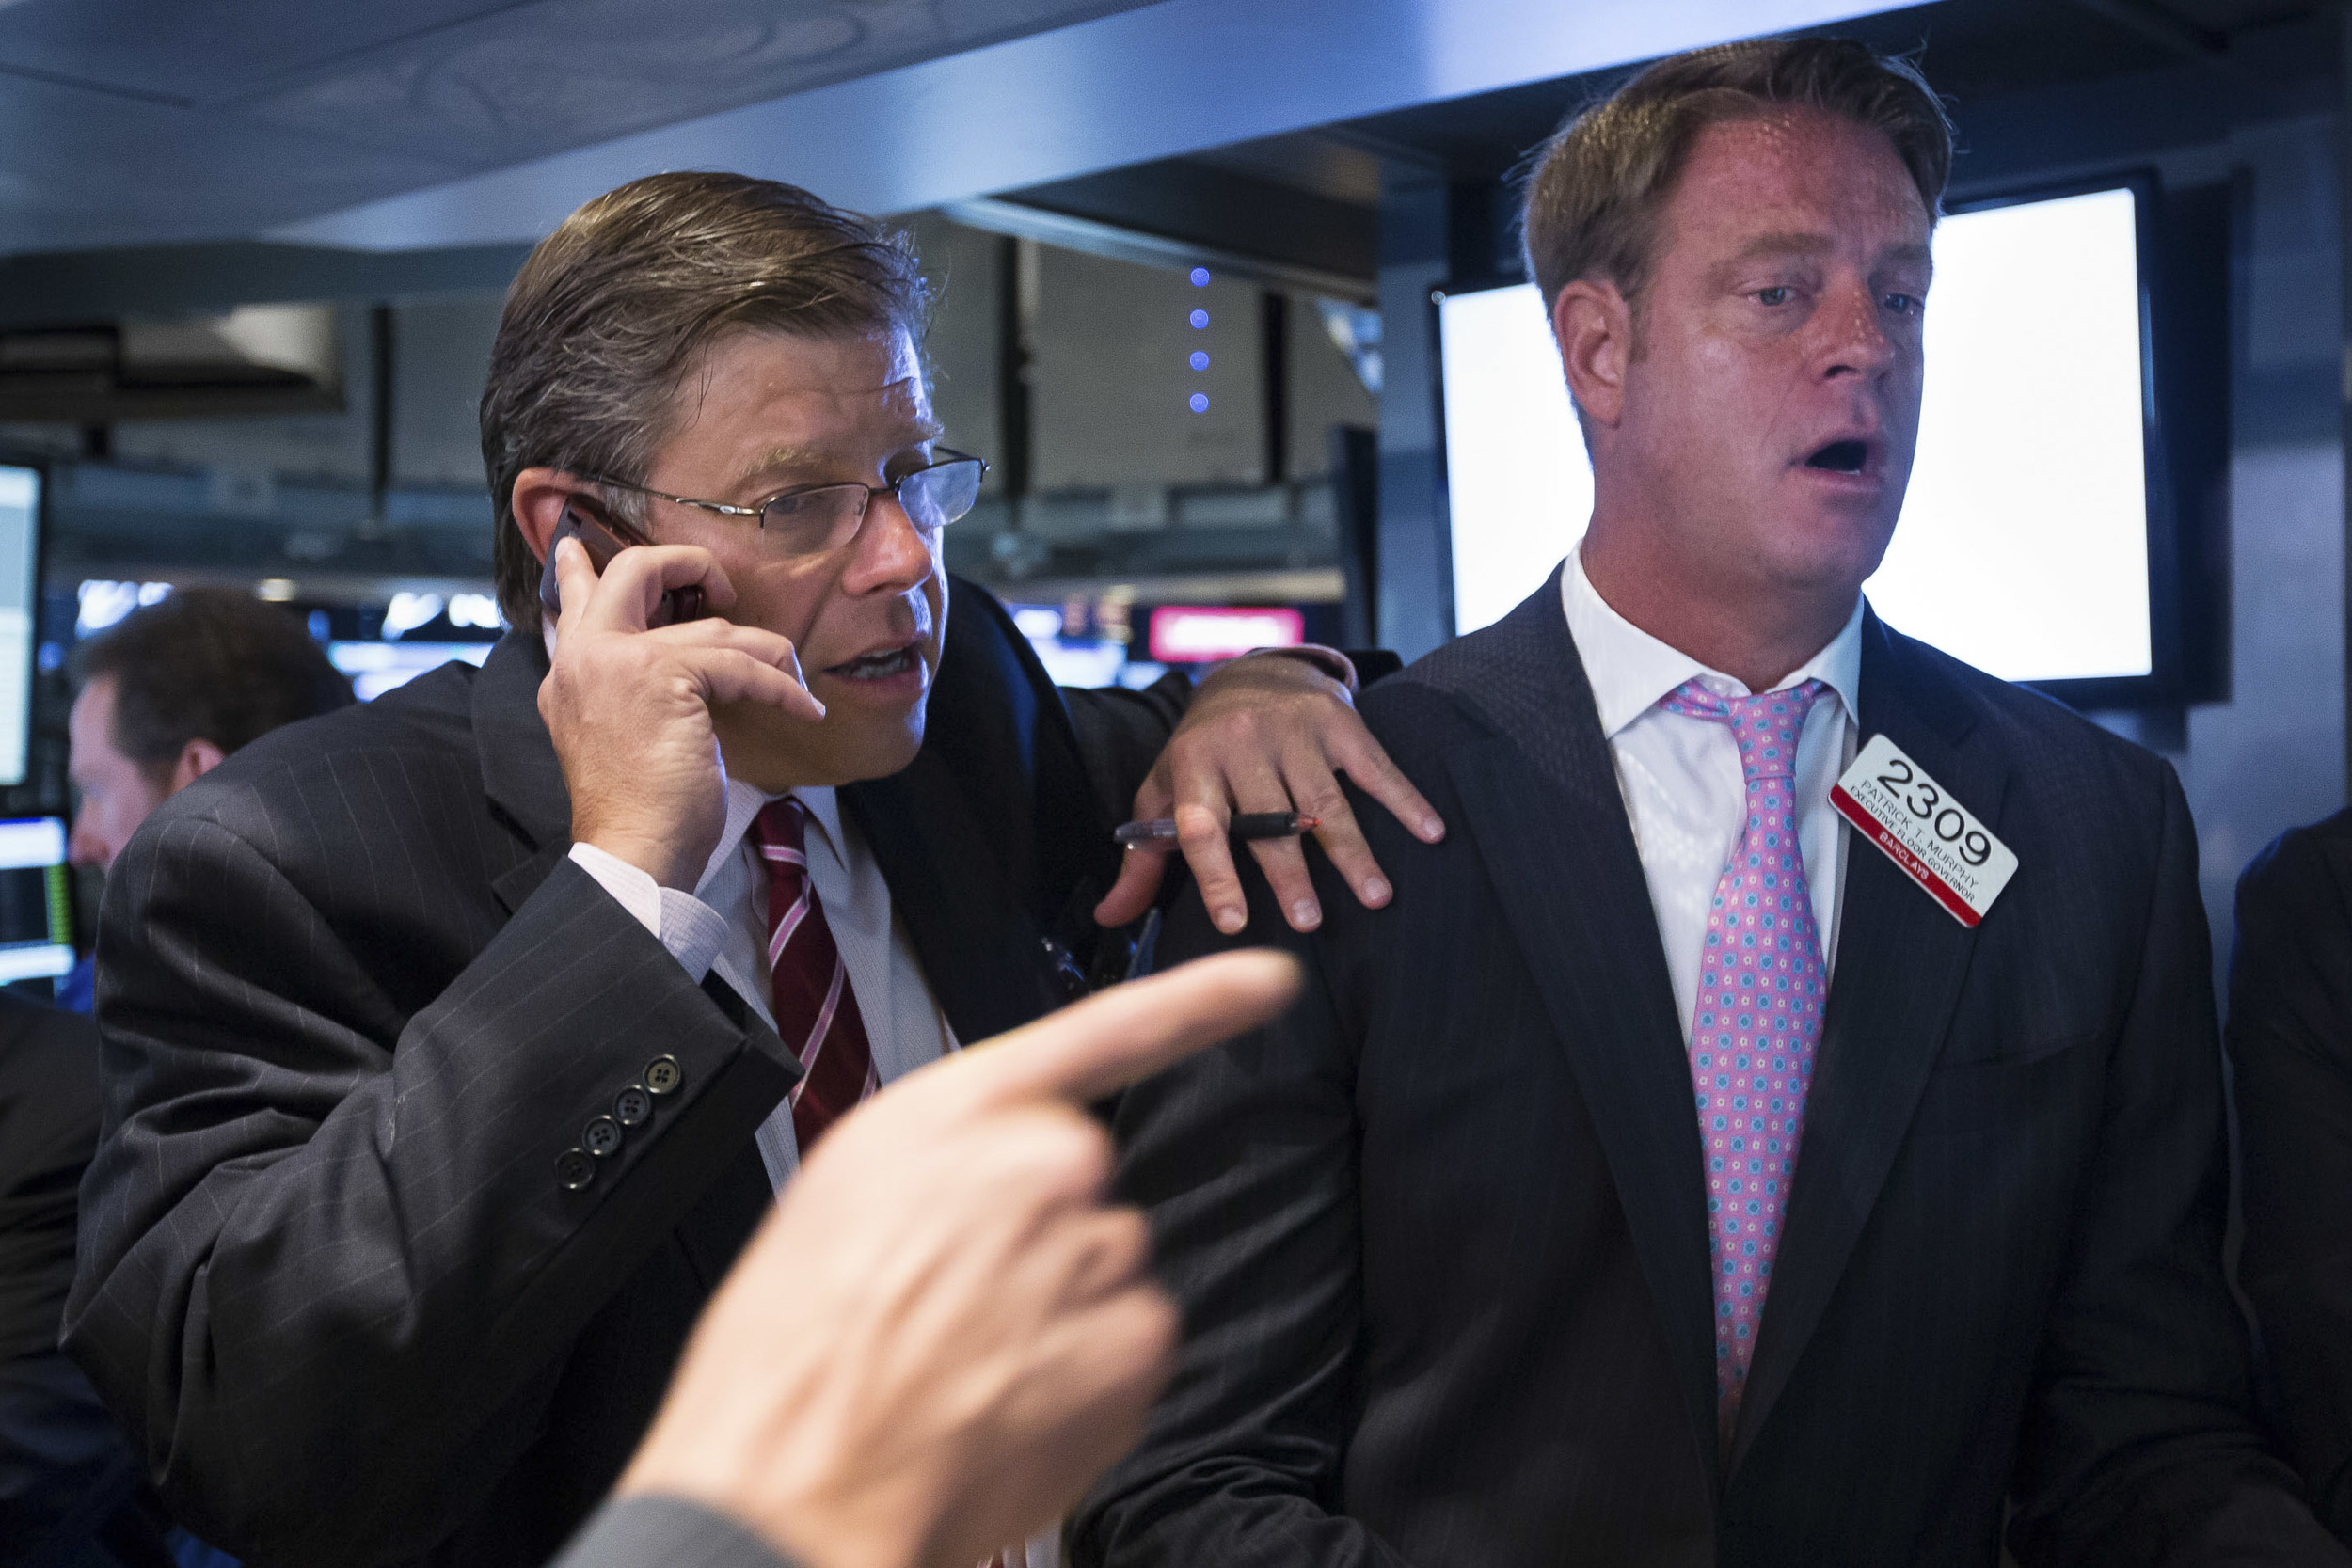 IPO's are one of the few times the Exchange buzzes with the same energy seen in the old days.